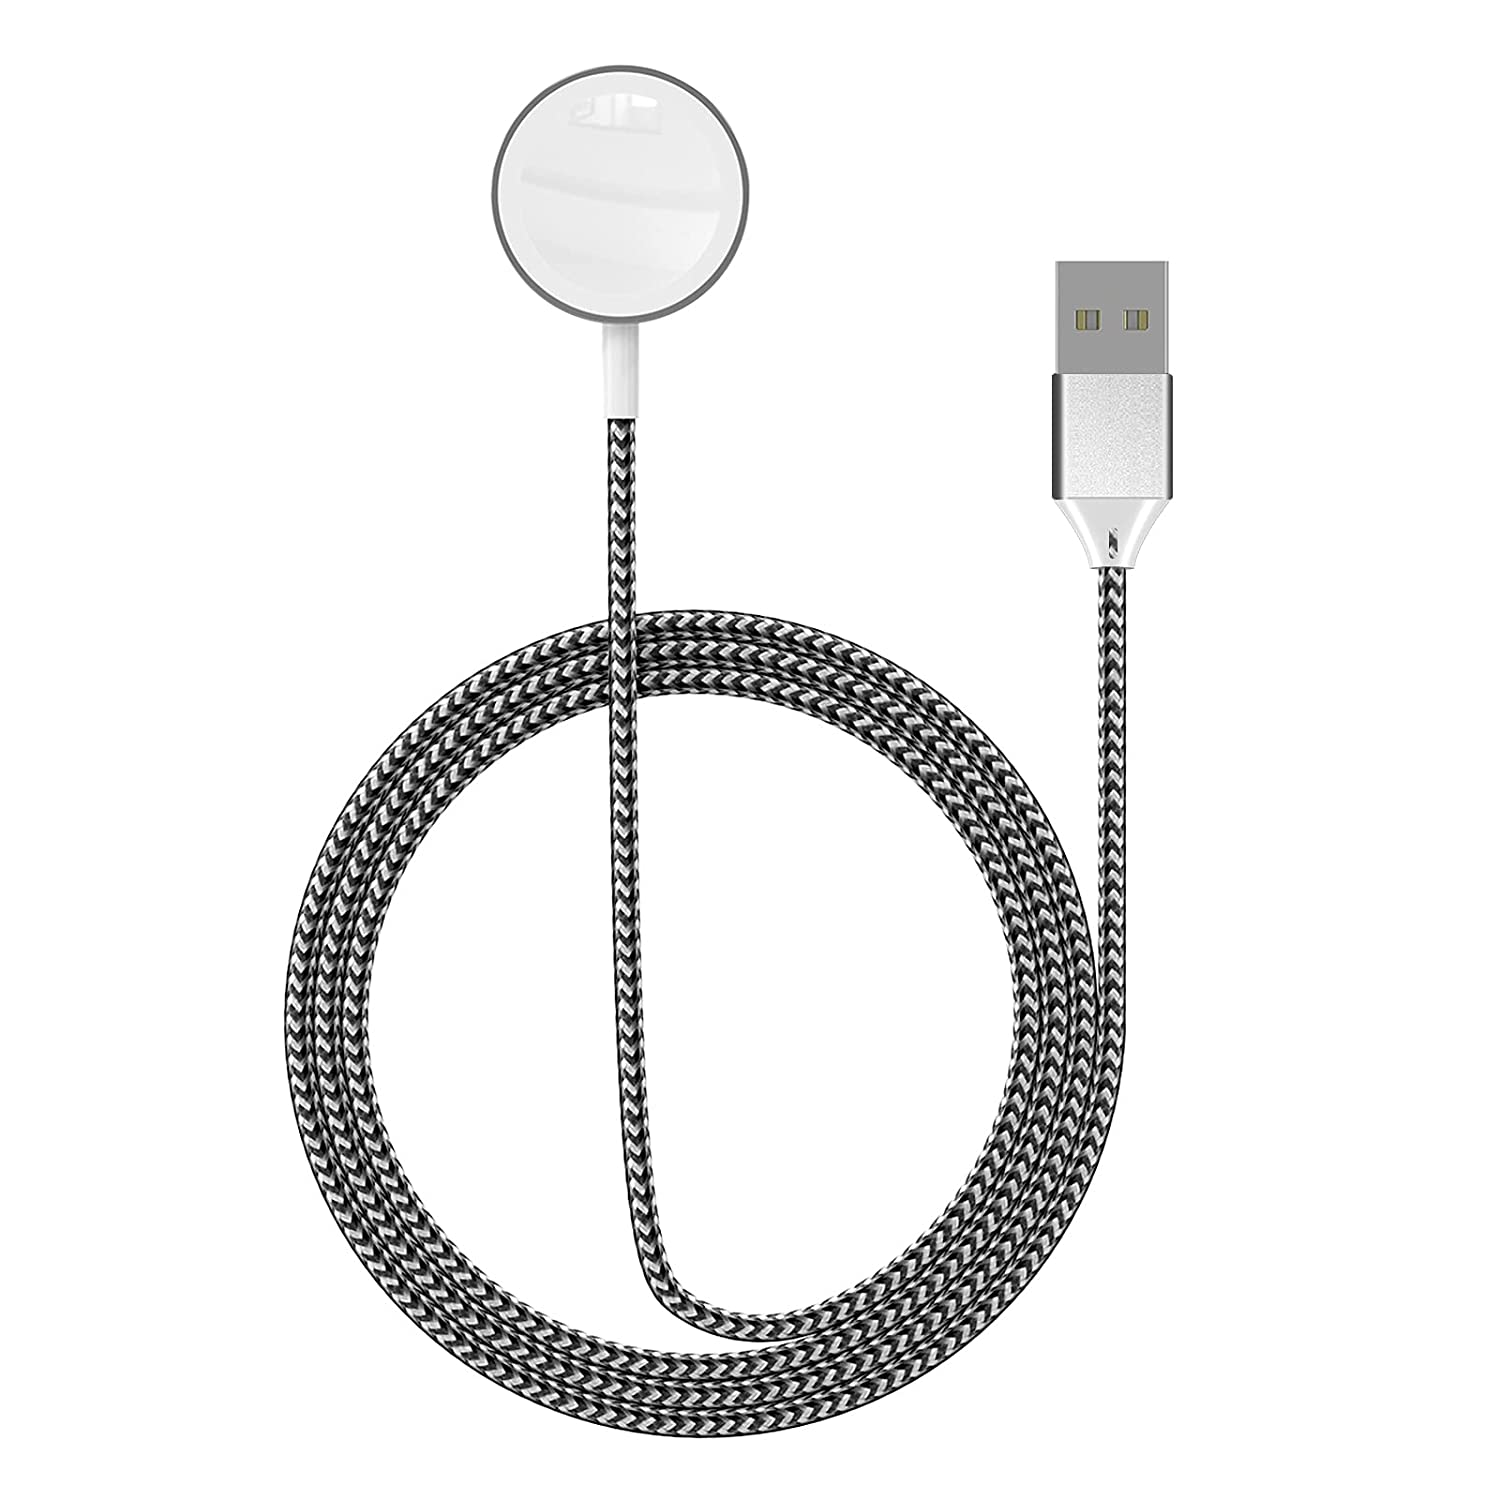 SEQI Watch Charger, 2 in 1 Magnetic Wireless Charger for, Nylon-Braided Charger Cable Compatible for Apple Watch Series 1-6/SE, for iPhone 12/11/X, for iPad and for AirPods (Light Black)